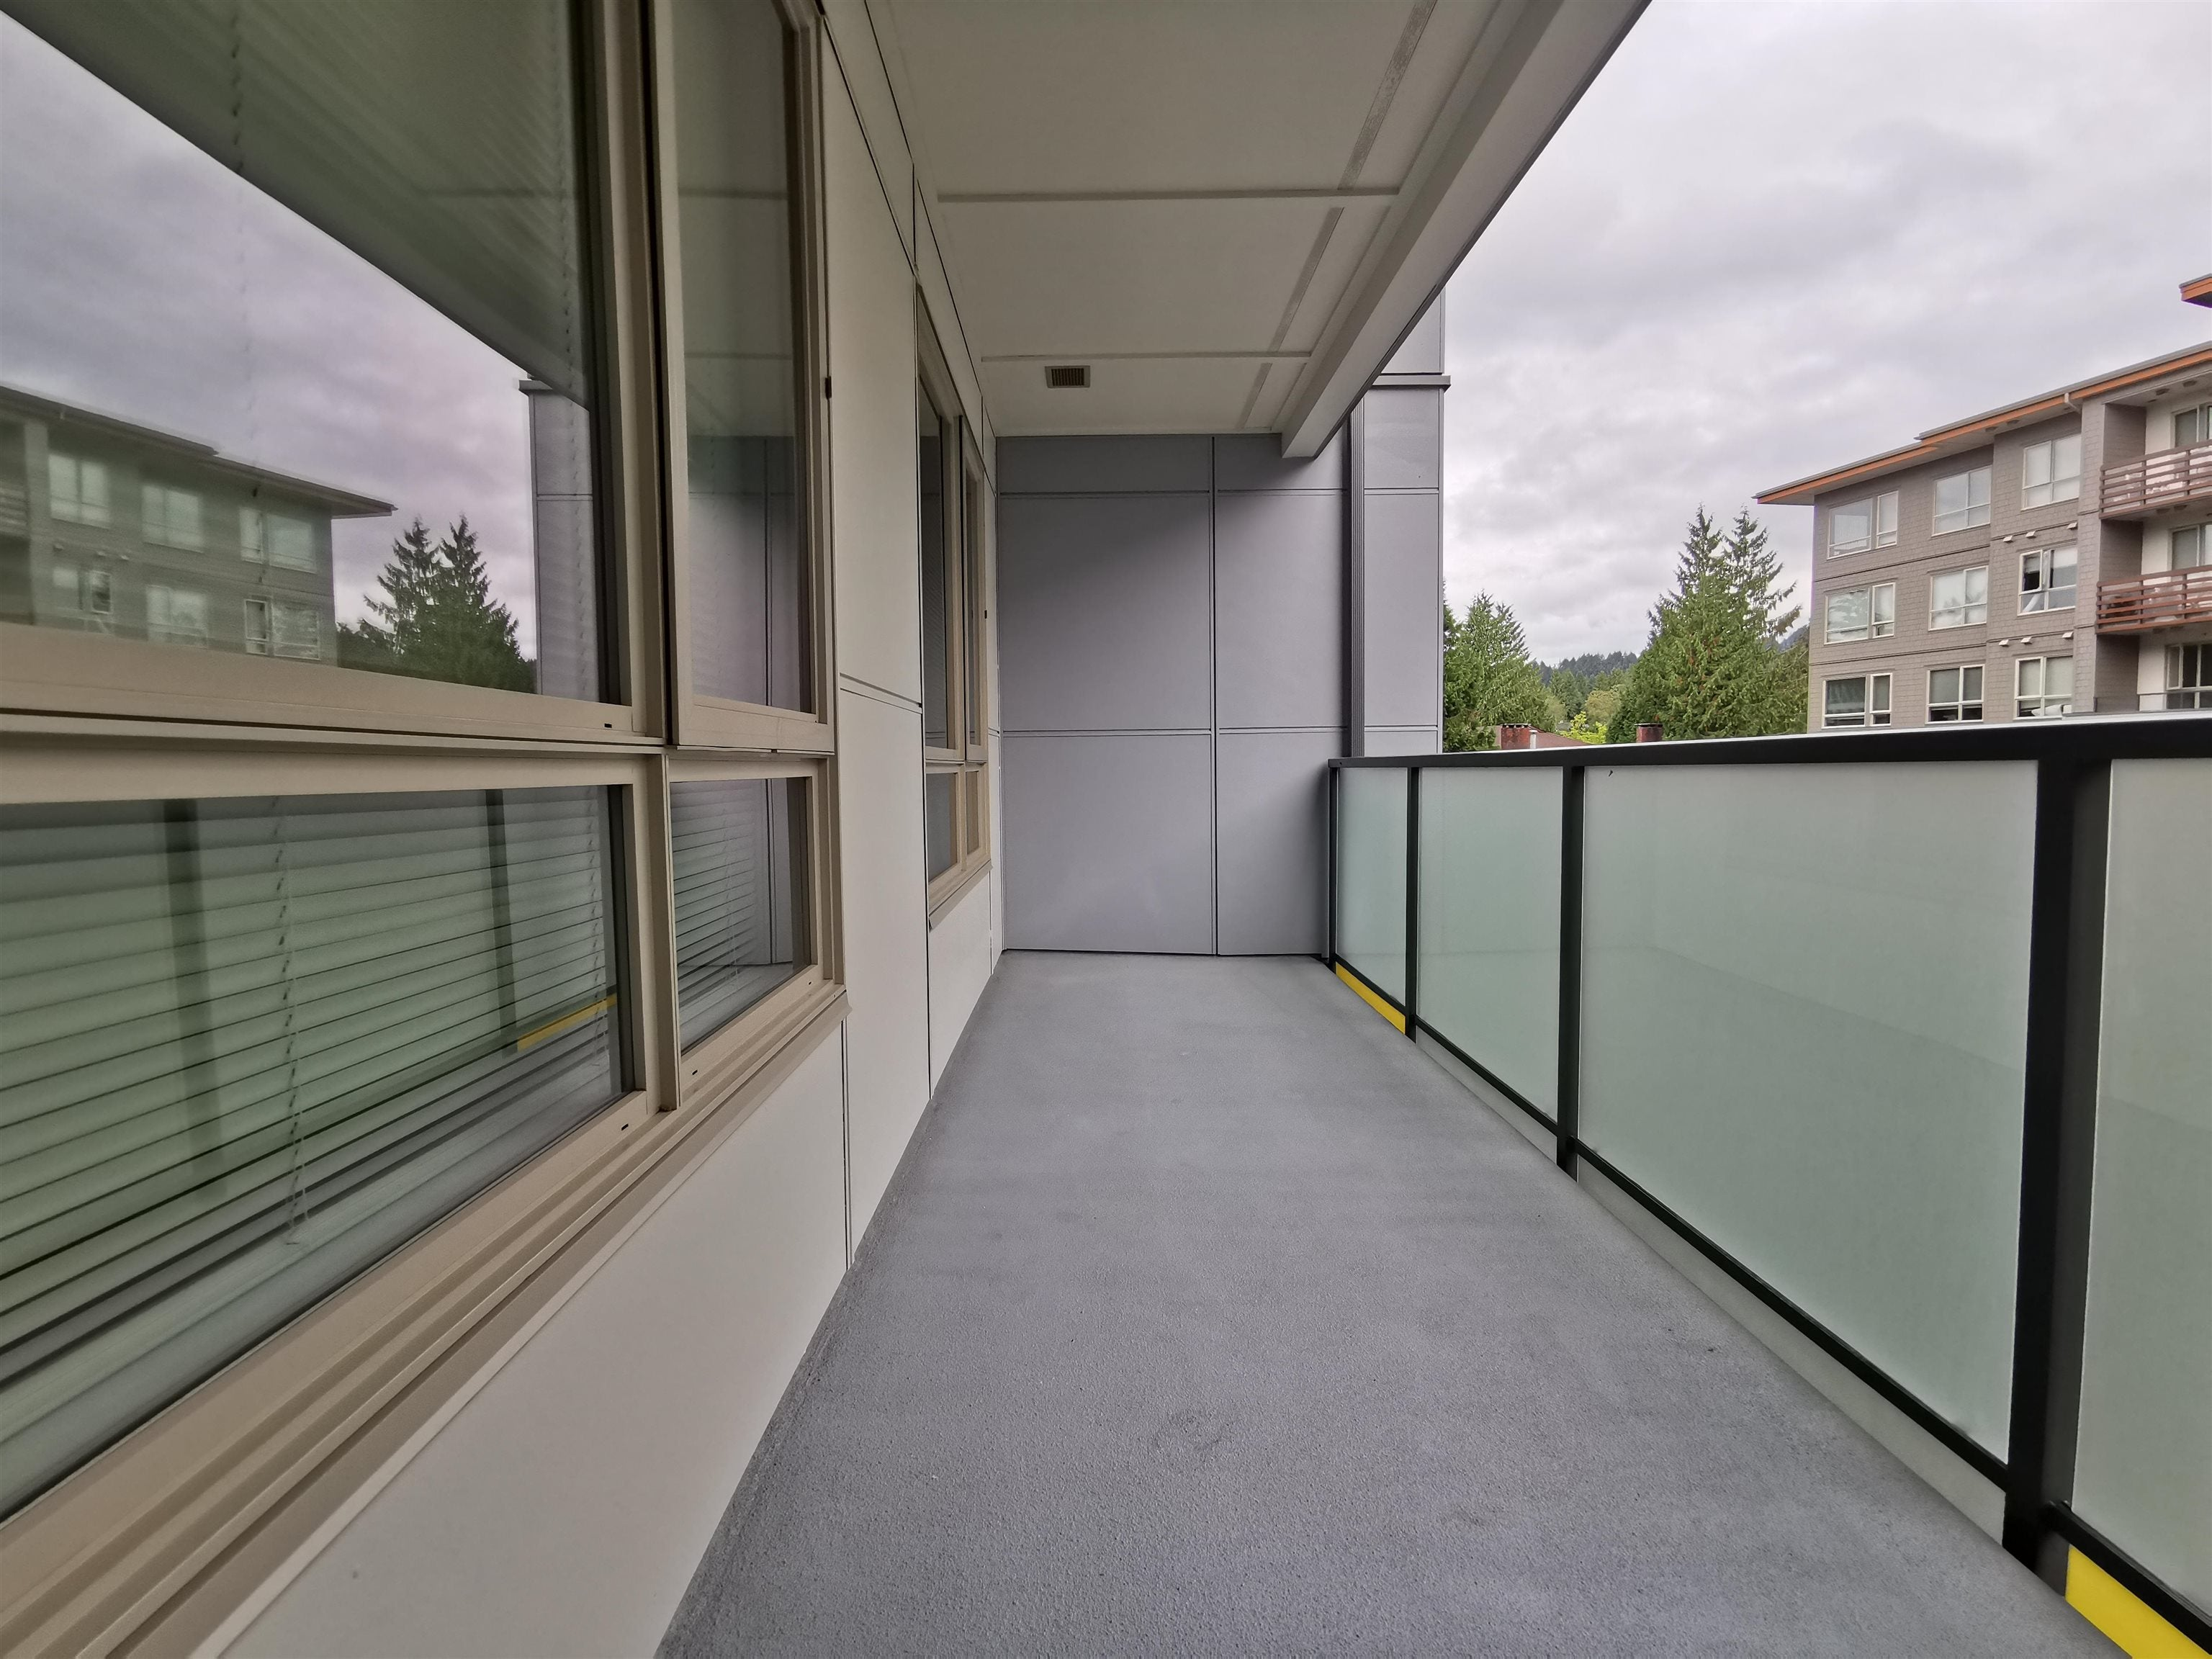 307 2651 LIBRARY LANE - Lynn Valley Apartment/Condo for sale, 2 Bedrooms (R2623451) - #22